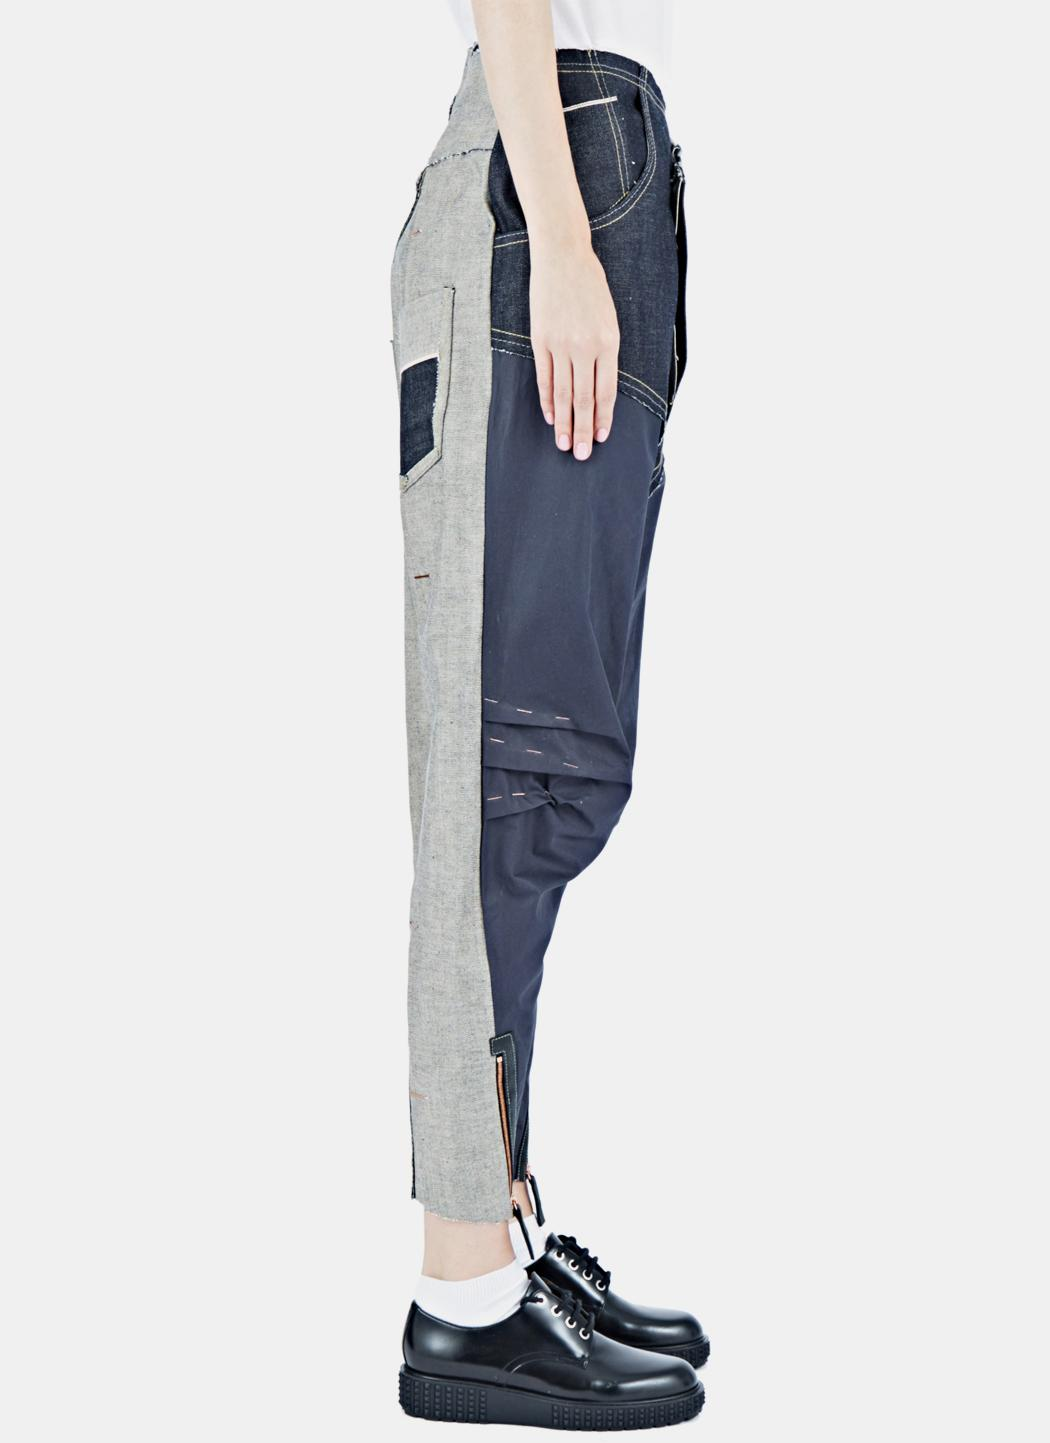 Hannah Jinkins Denim Women's Cross Fly Wet Gloss Jeans In Indigo in Grey